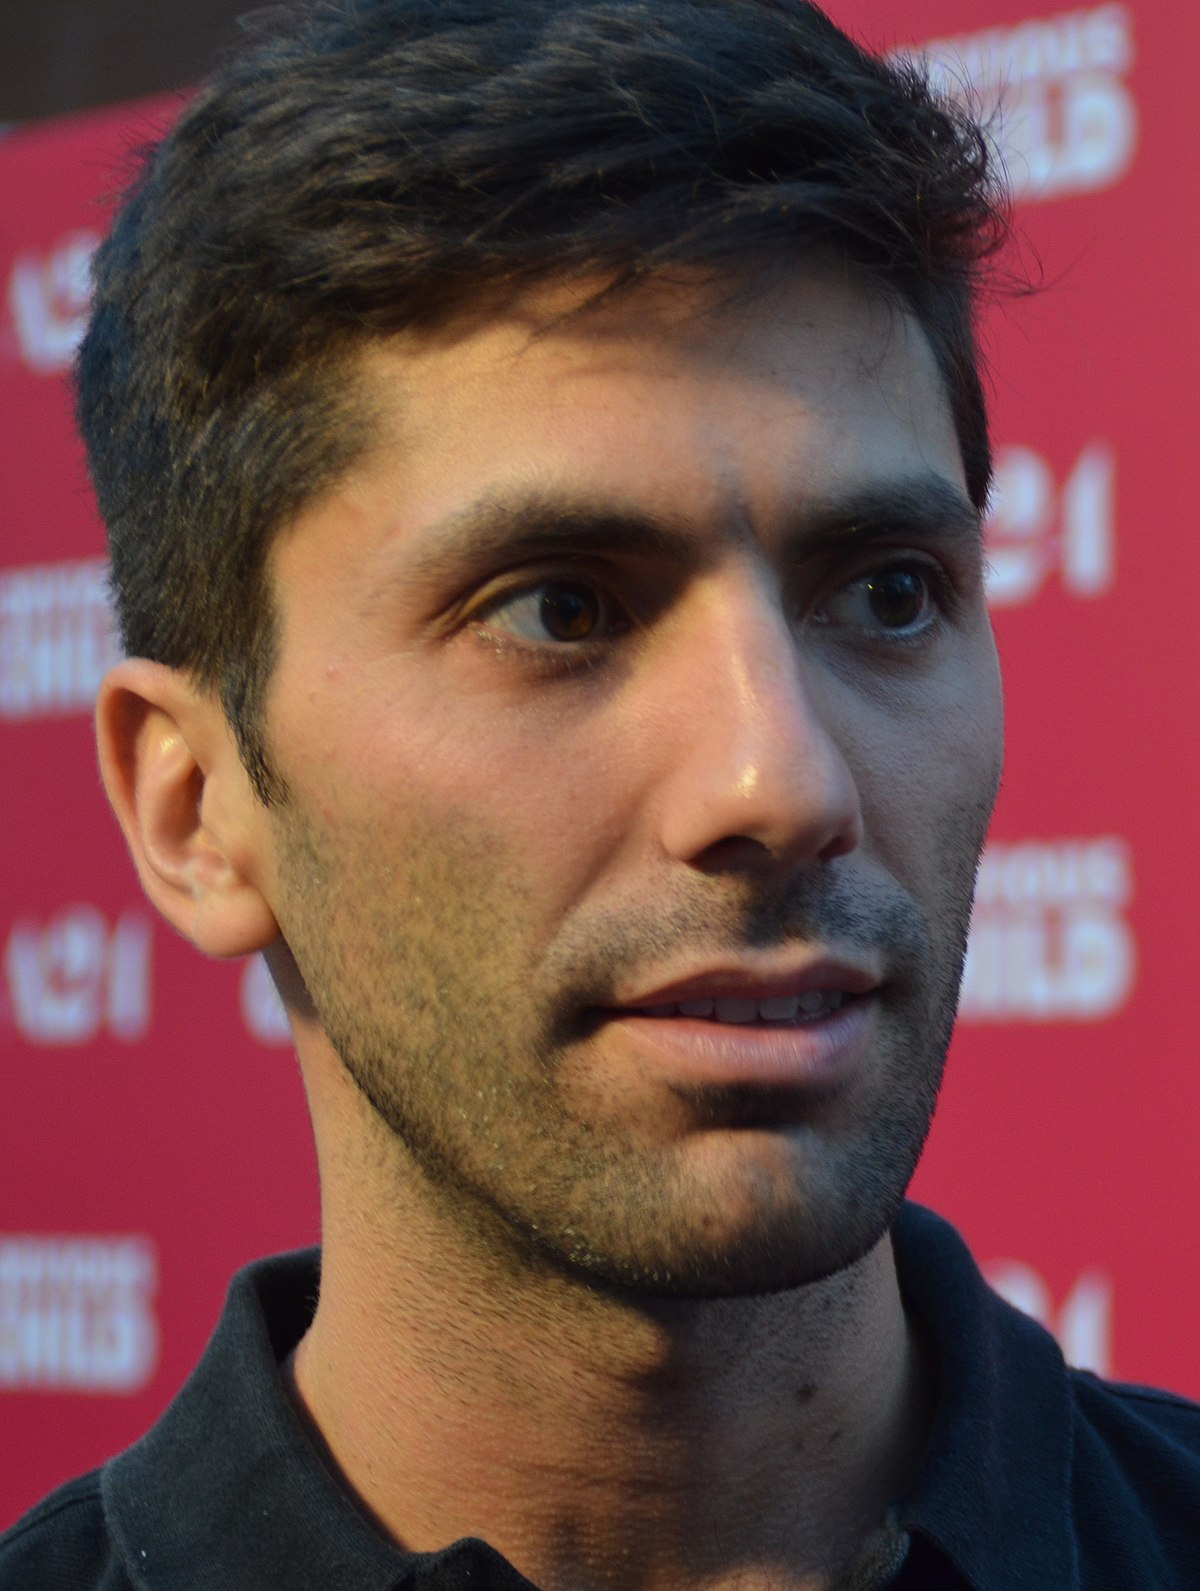 Nev Schulman Obvious Child Premiere 2014 (cropped).jpg